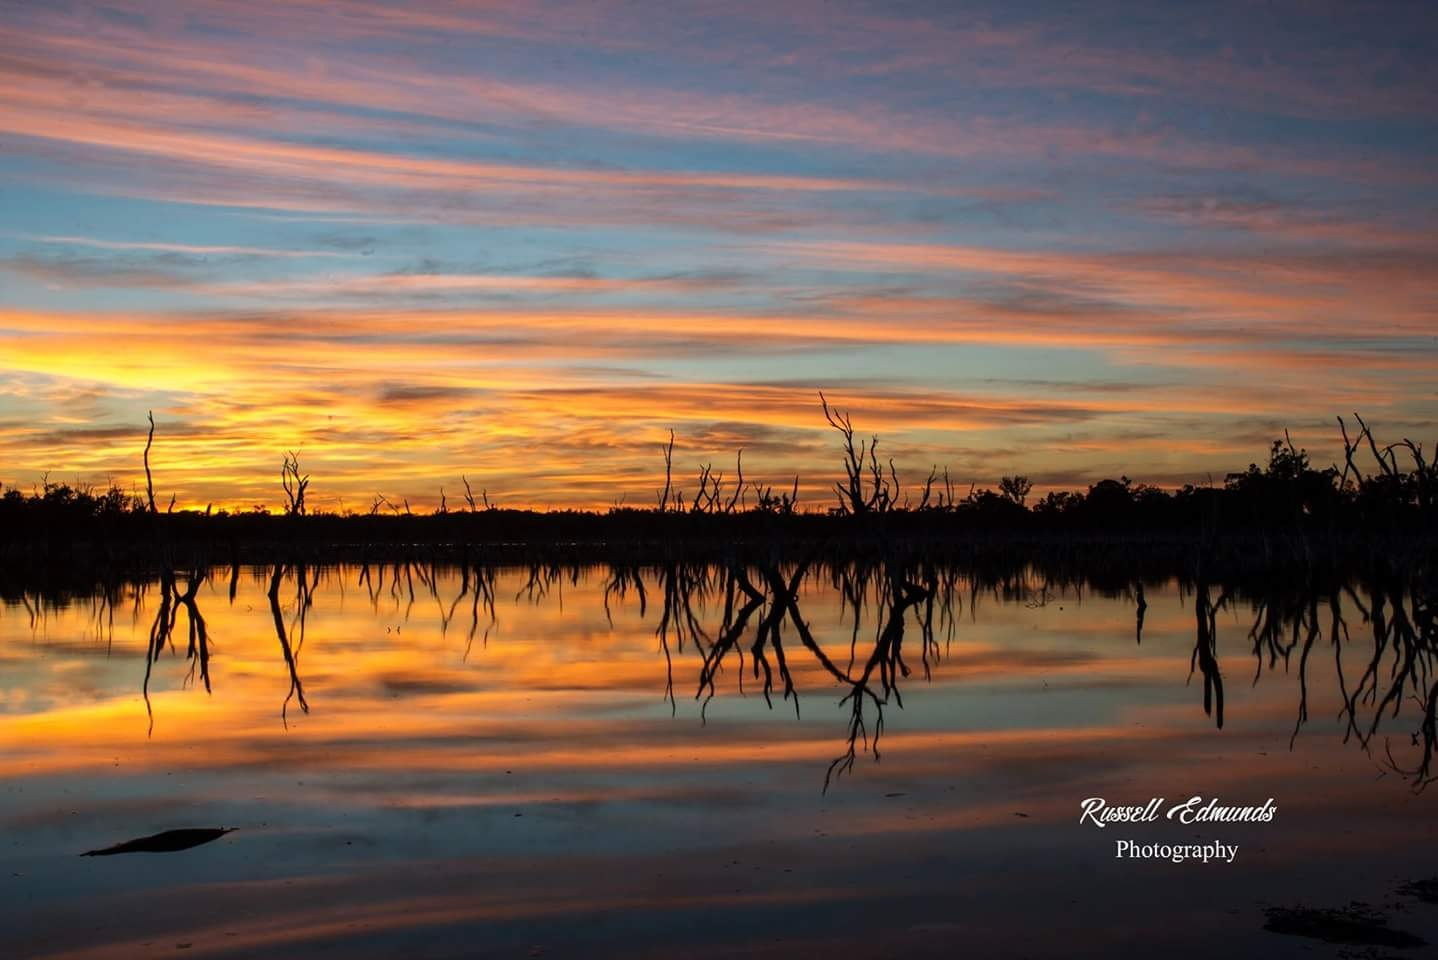 sunrise by Russell Edmunds